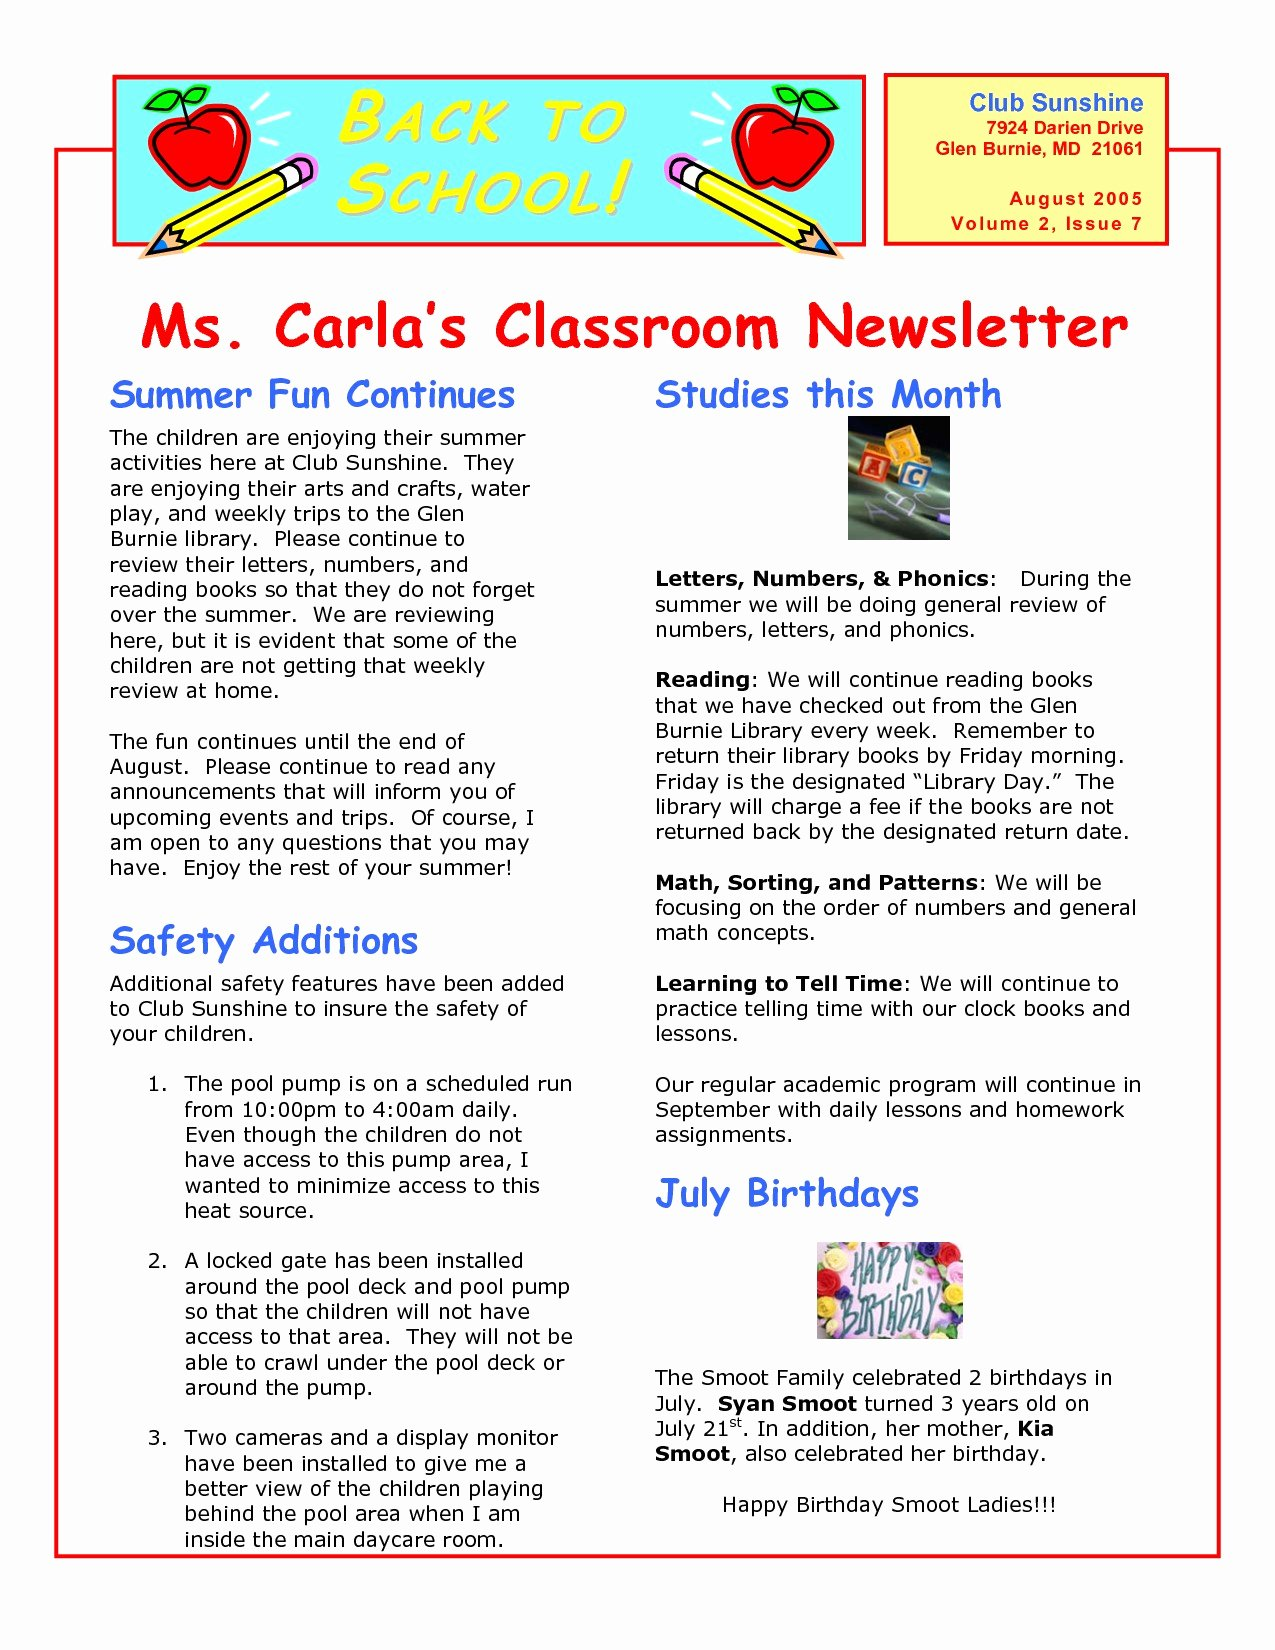 Elementary School Newsletter Template Best Of 14 15 Elementary School News Letter